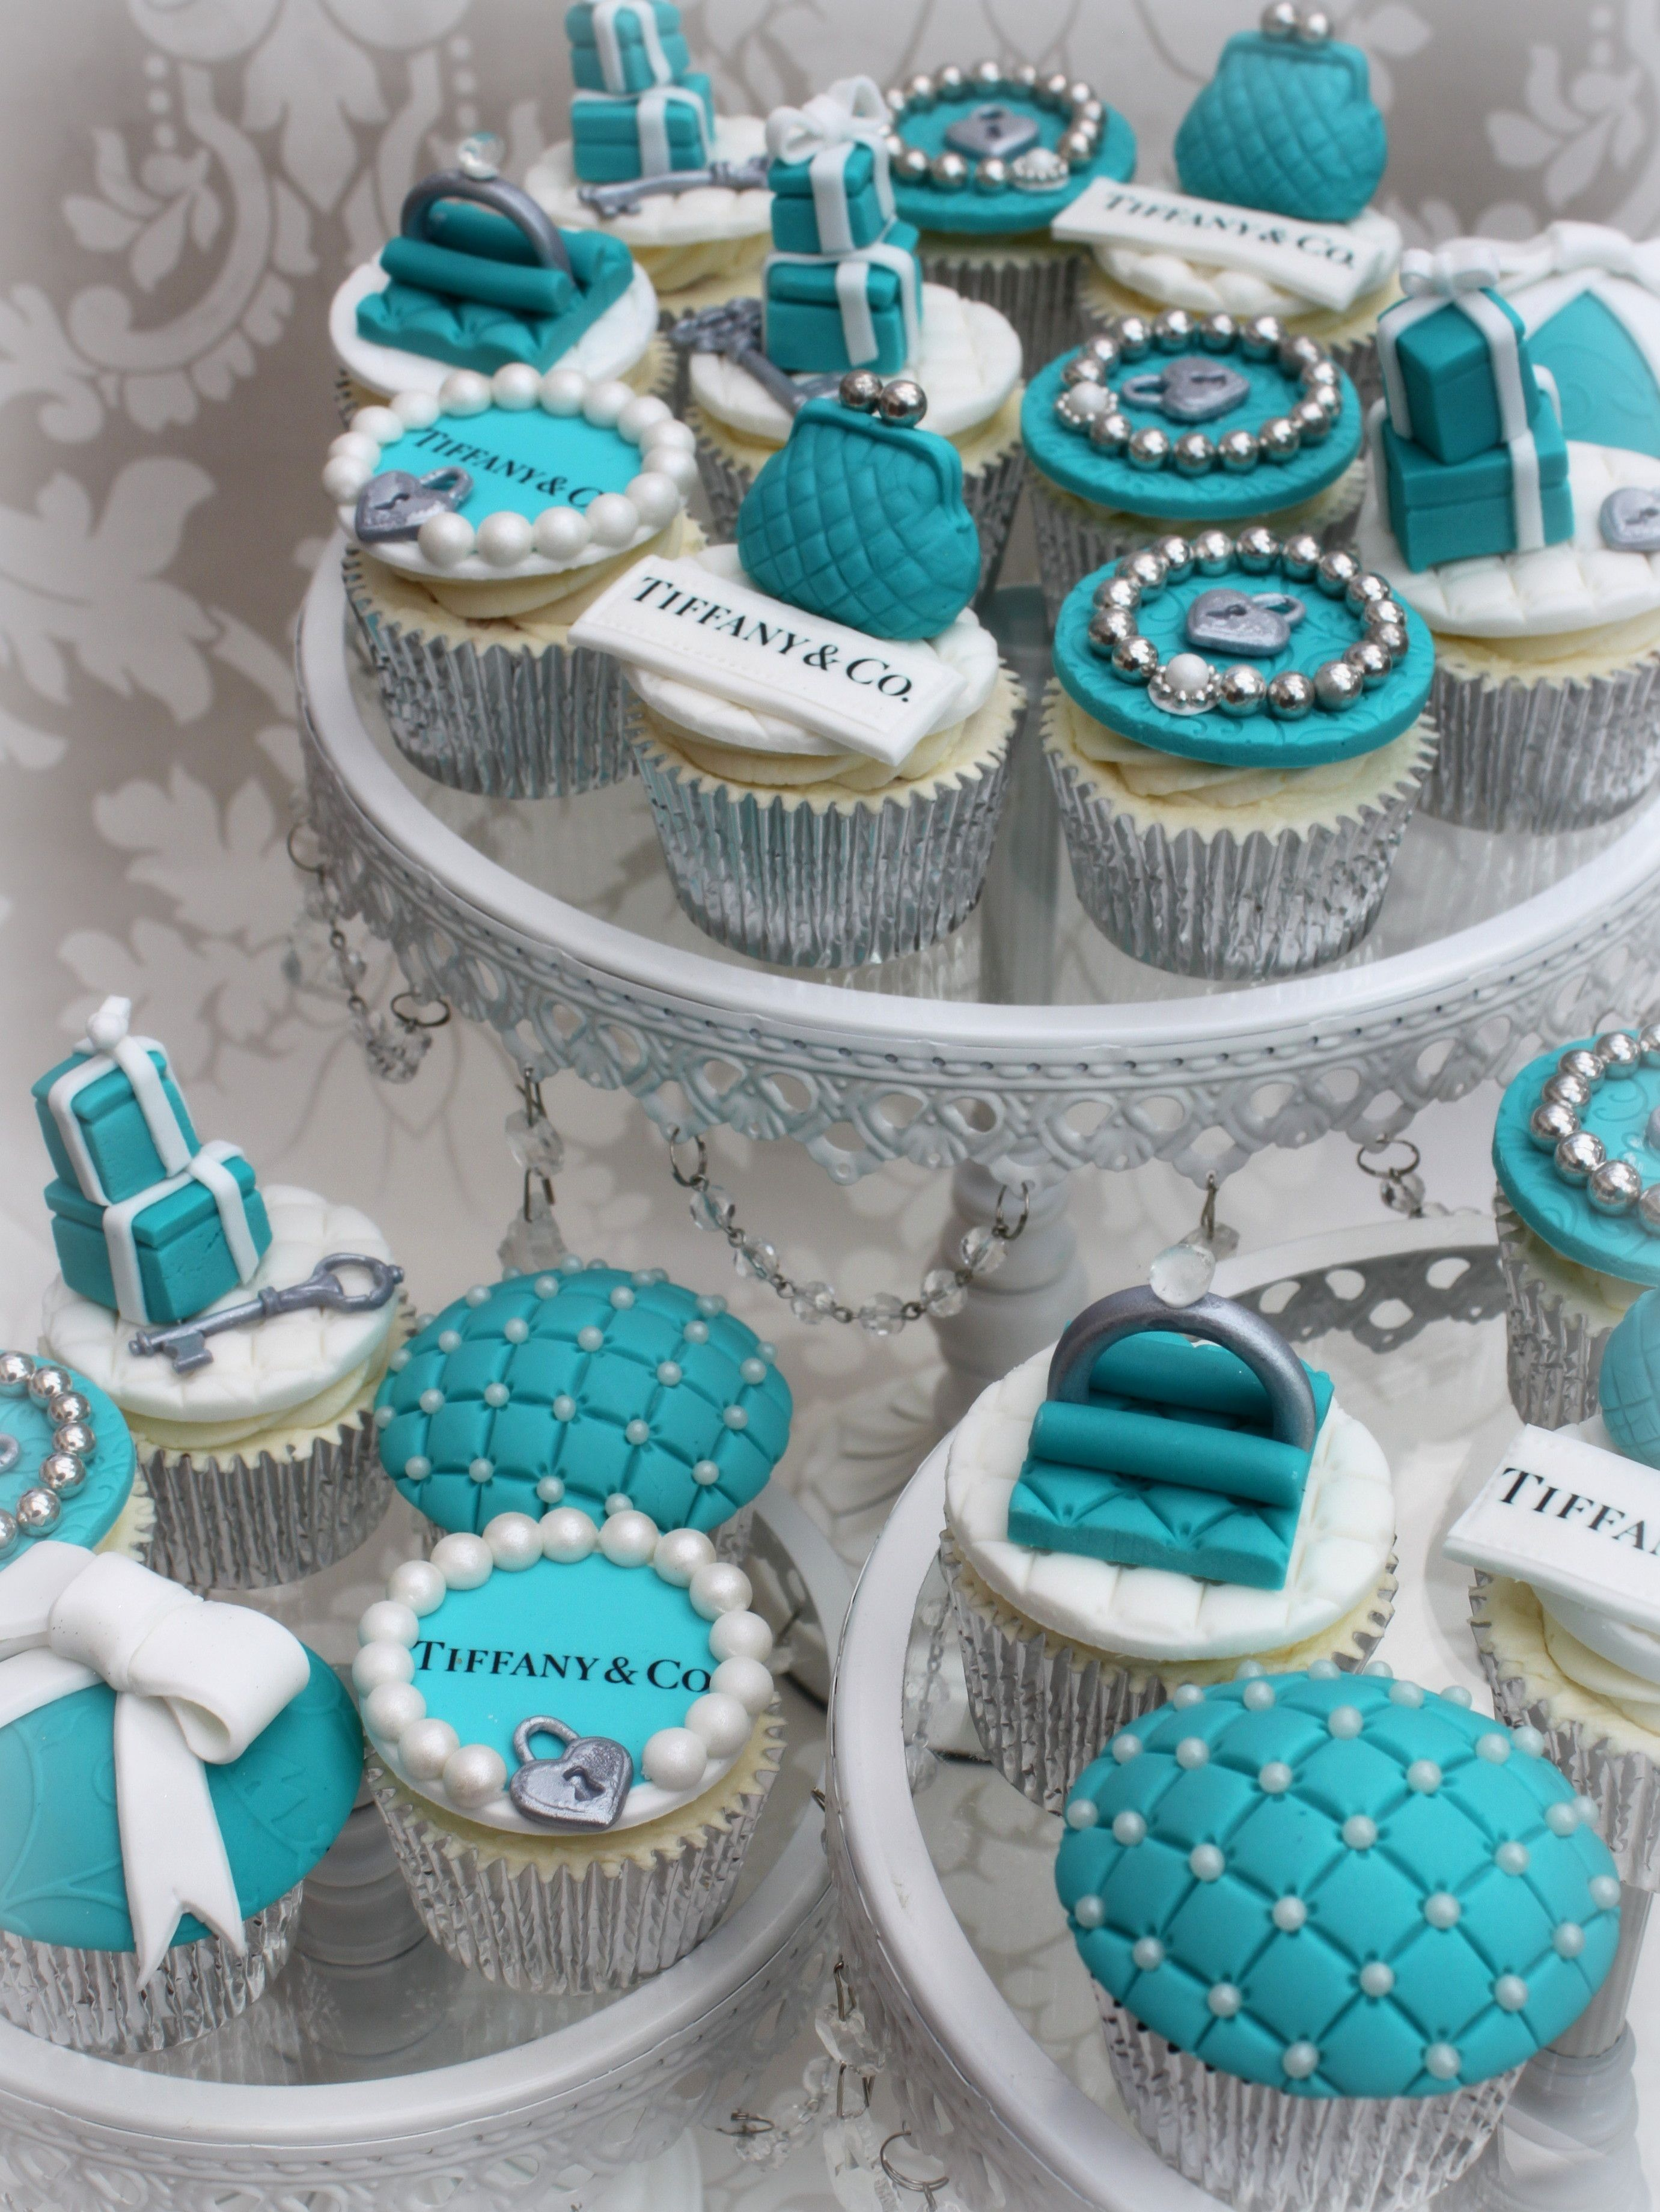 c0a22313caa Tiffany and Co cupcakes in 2019 | Nays cupcakes | Tiffany cupcakes ...